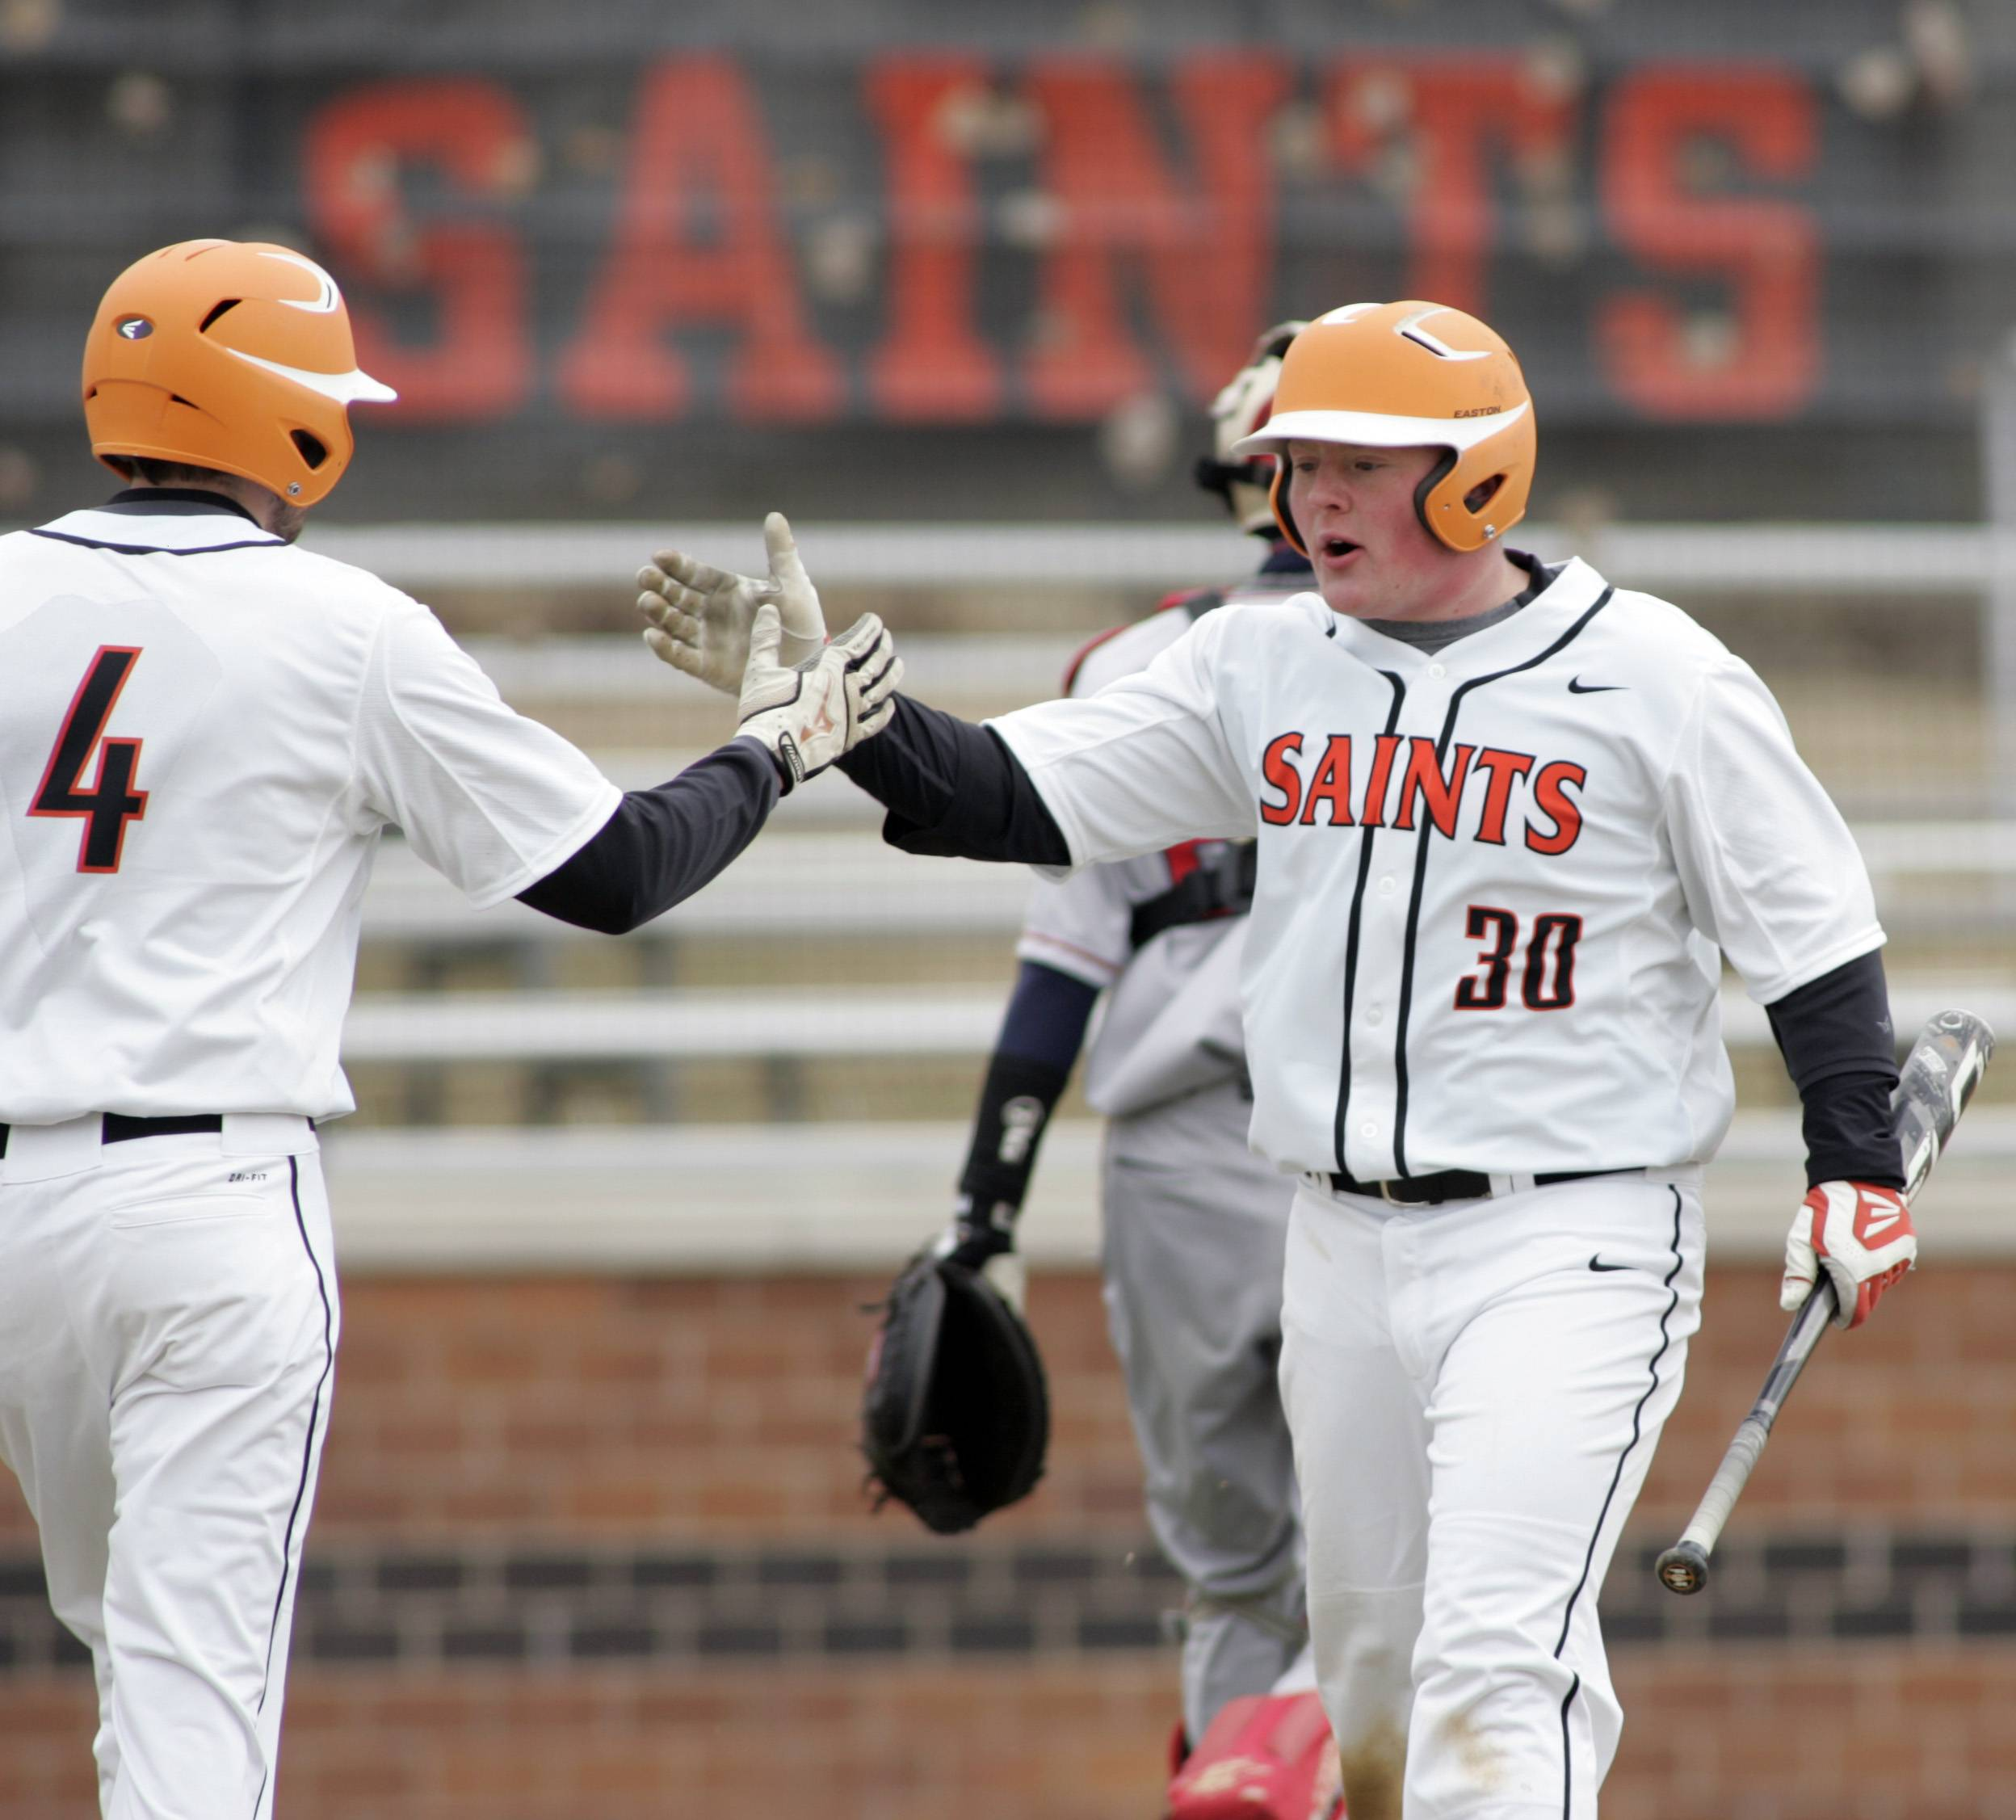 Saints' Charles Alex Abate, 4, greets Ben Smith at the plate after Smith scored on a double by Adam Rojas during the Saints' win over West Aurora in St. Charles on Tuesday.